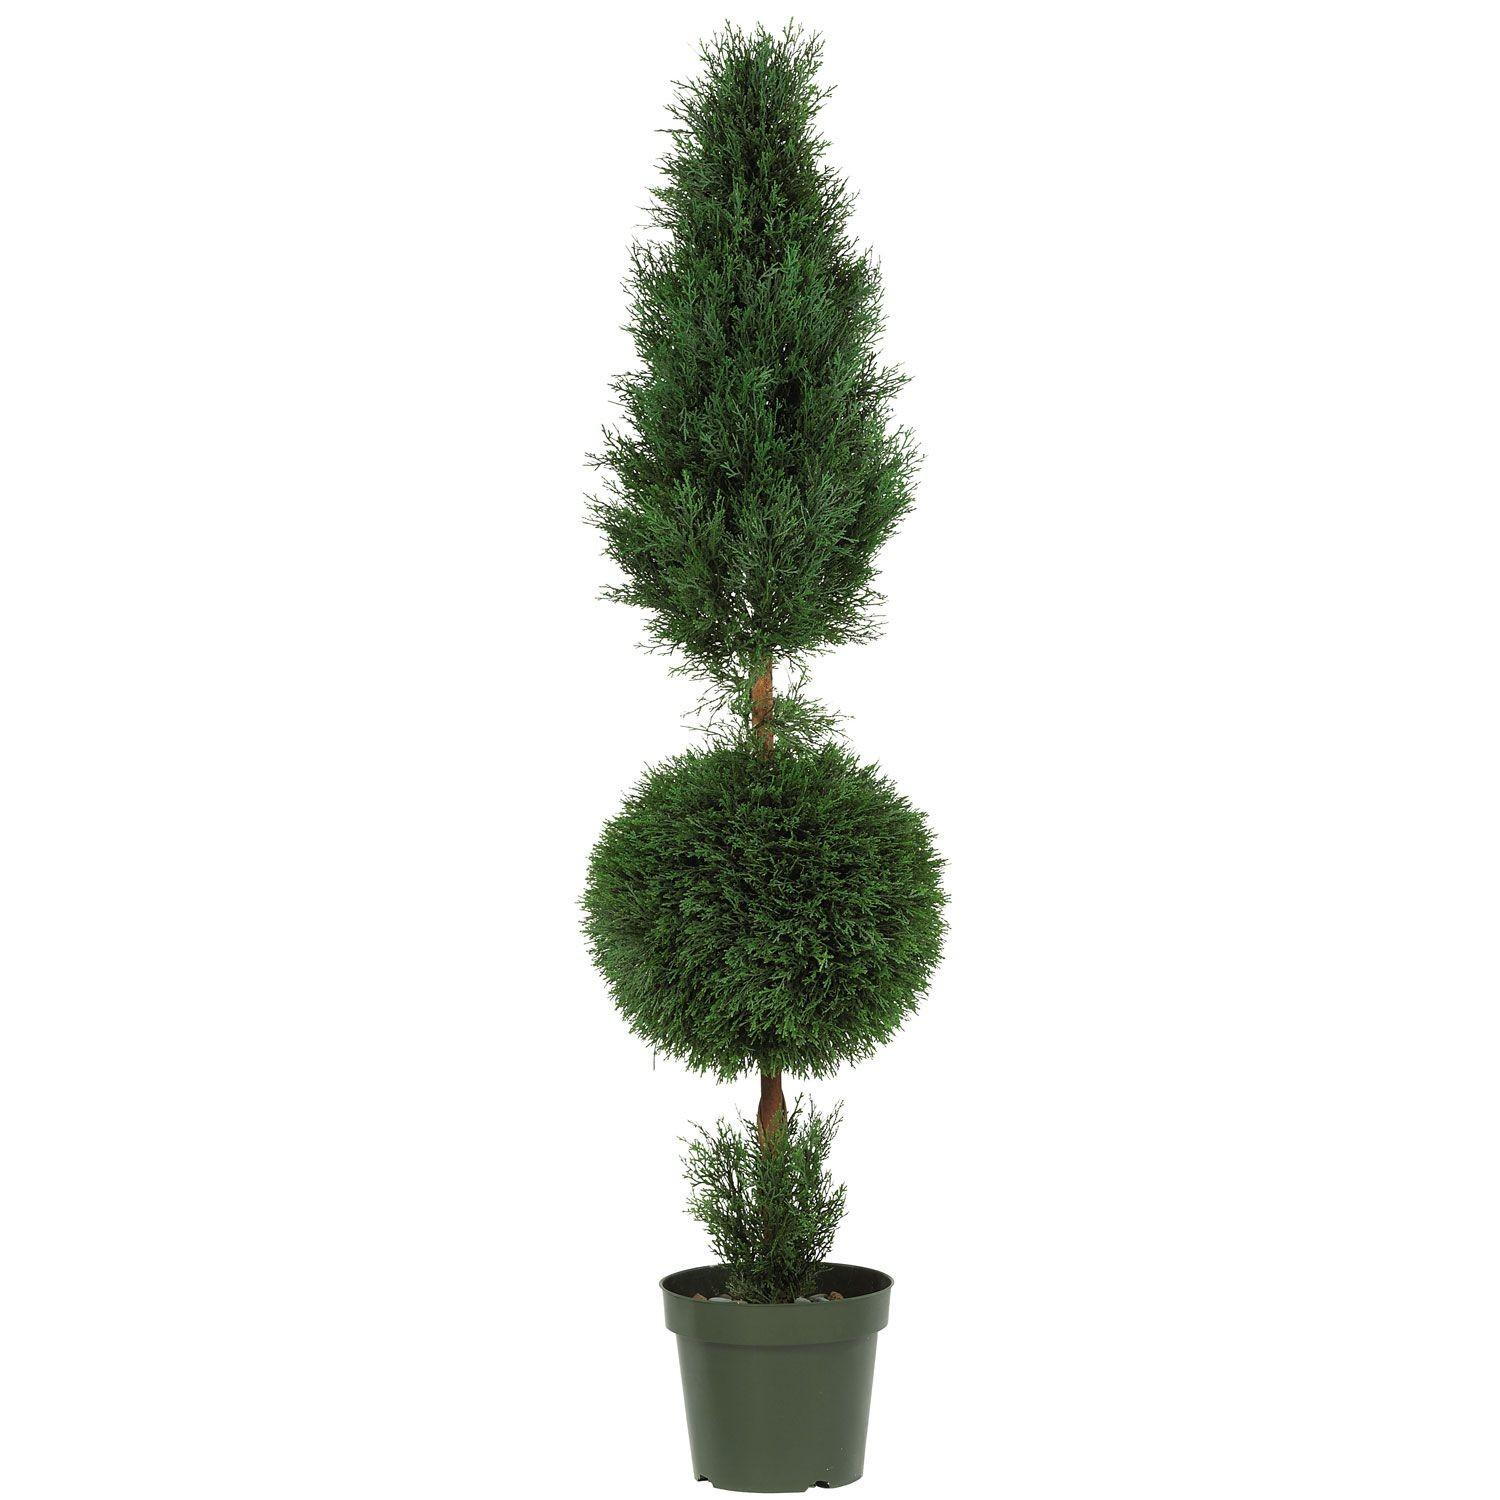 Cypress Ball Cone Shaped Artificial Topiary Tree Pot